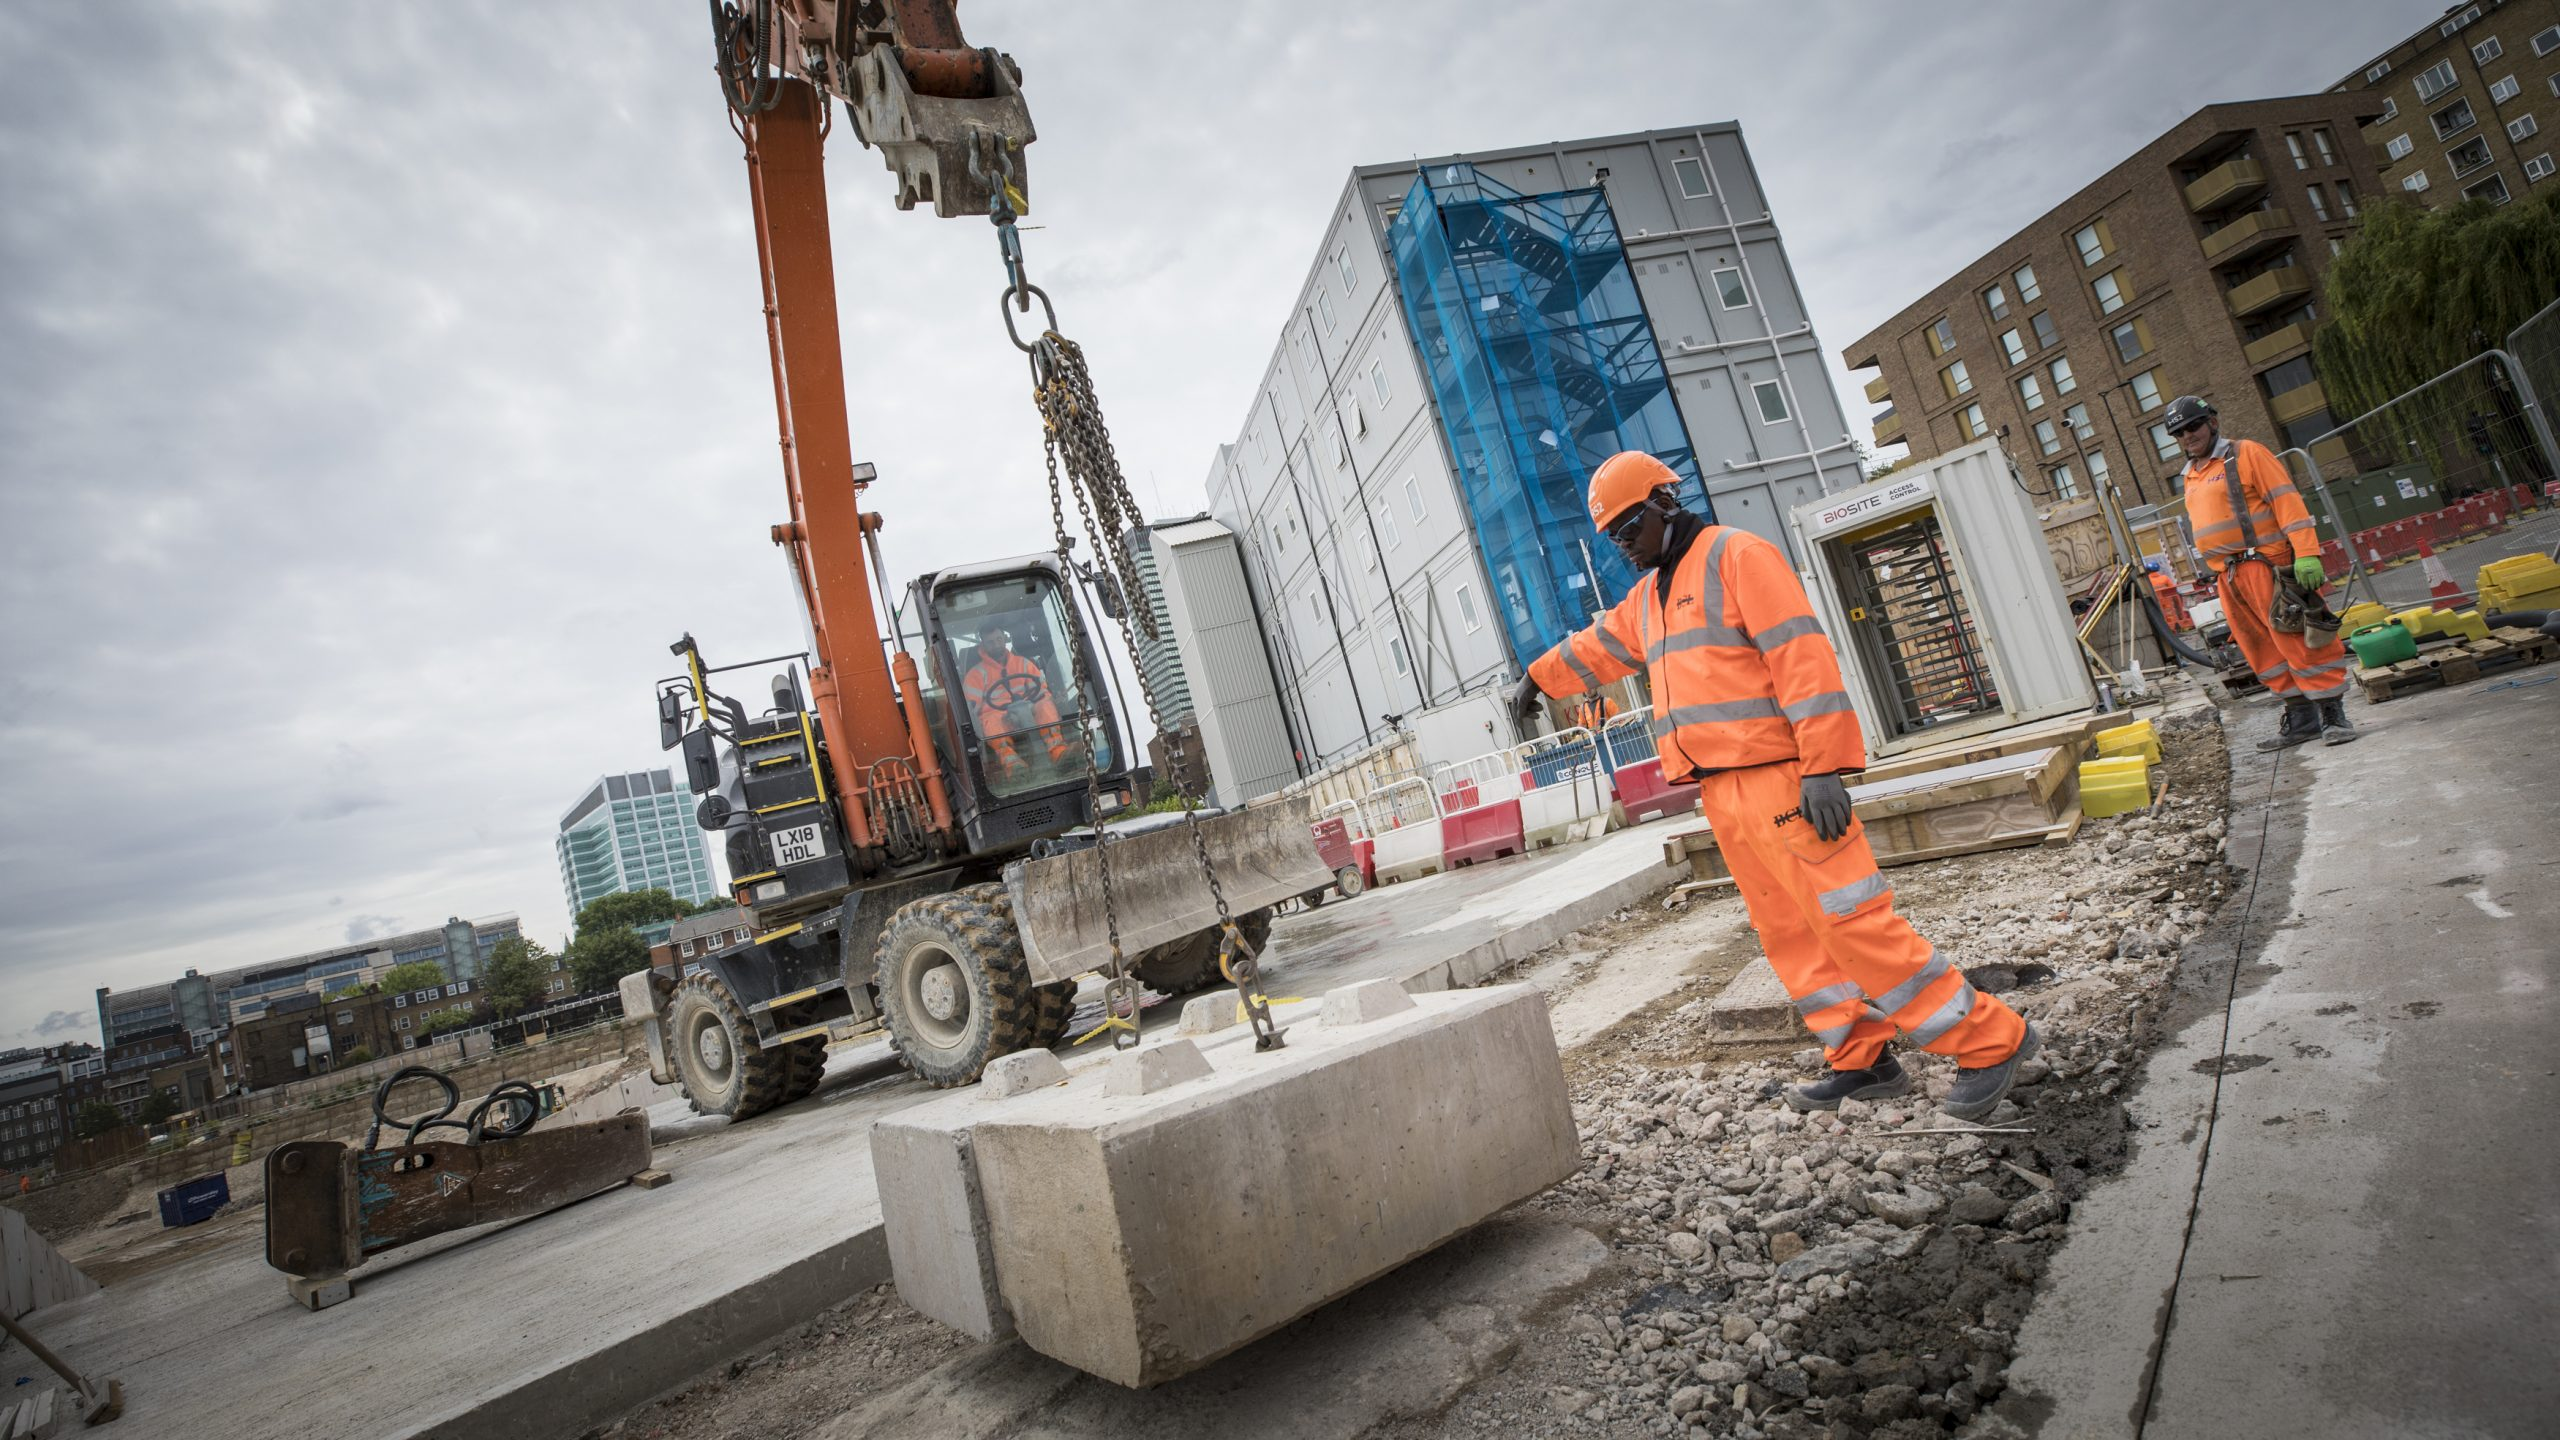 Sunak pledges £100bn to fund 'once in a generation' infrastructure push